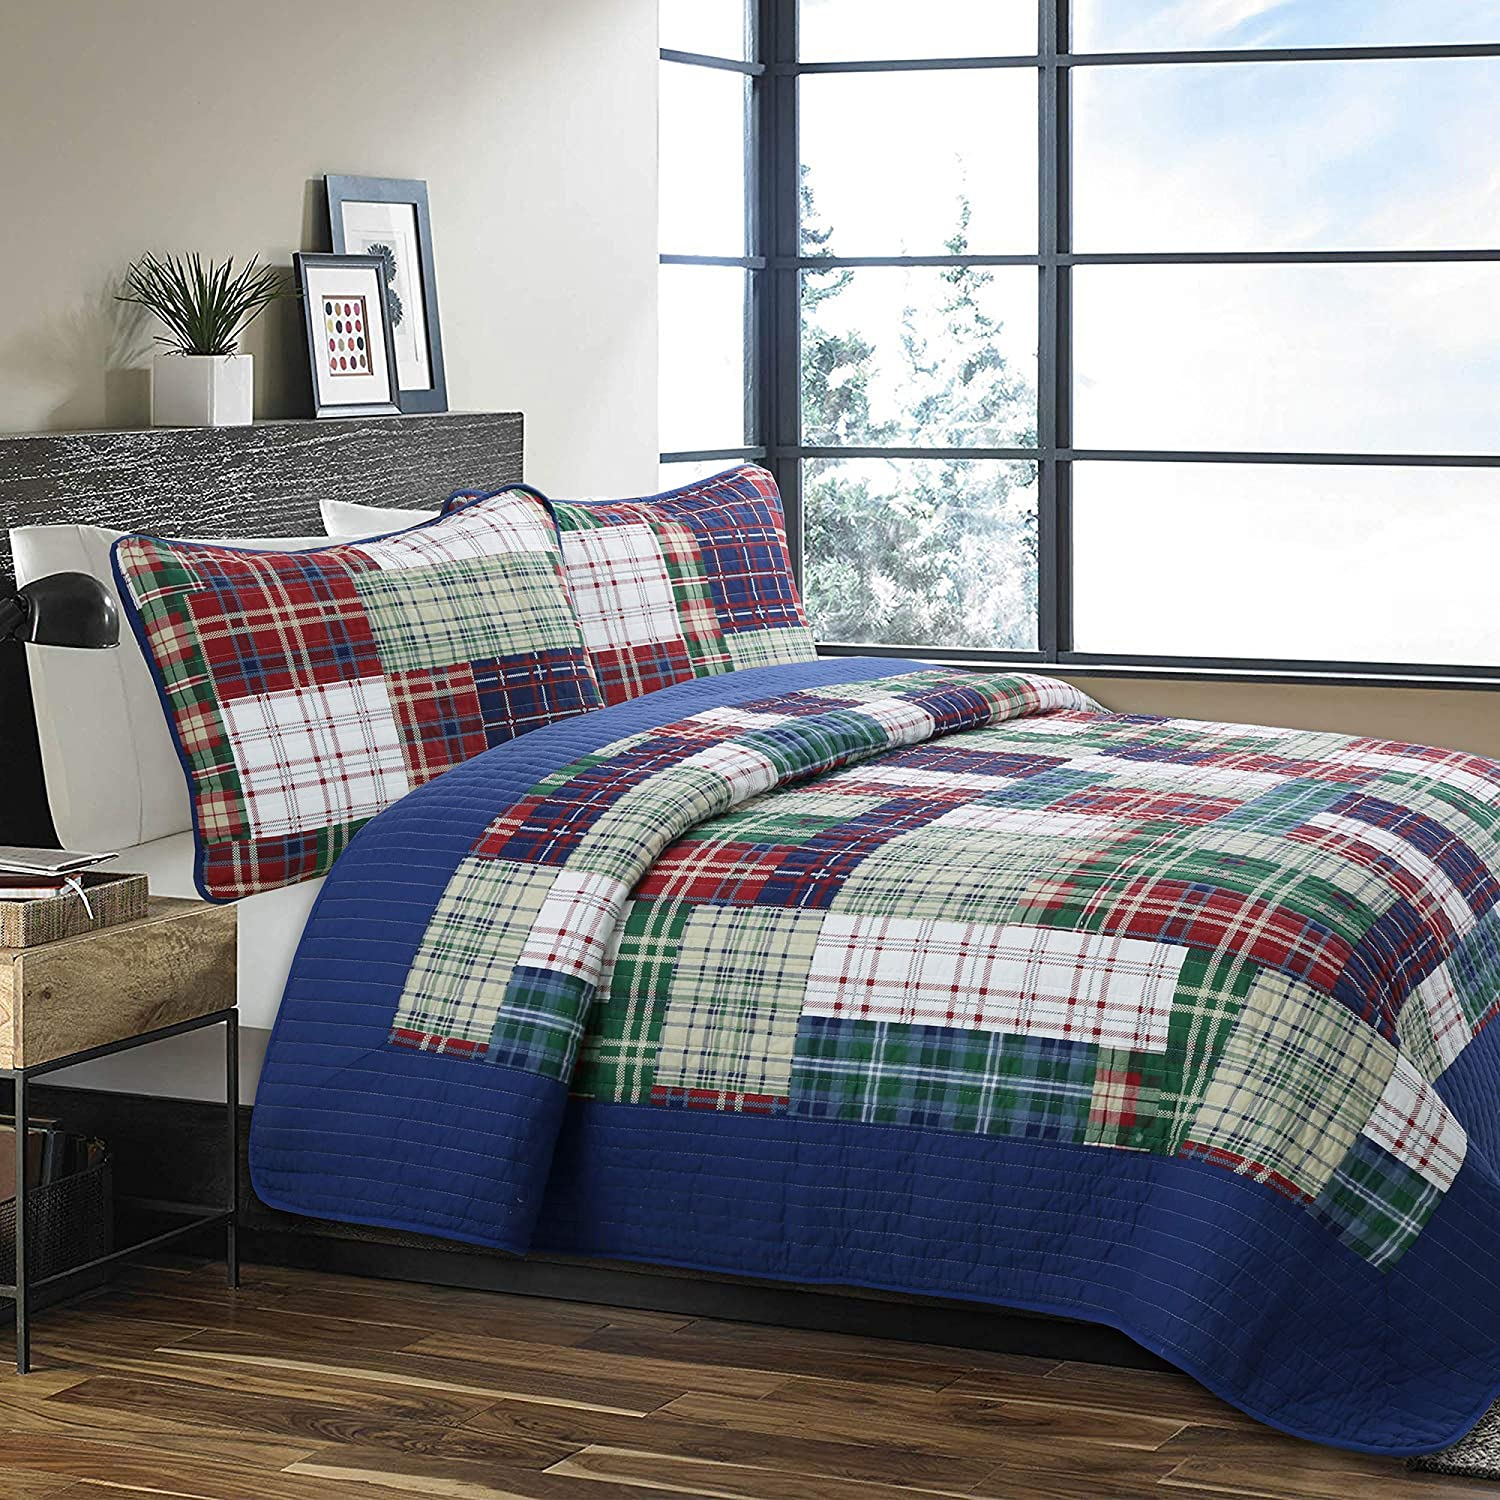 Cozy Line Home Fashions Nate Patchwork Blue Plaid Navy Green Ranking TOP12 Red Wholesale